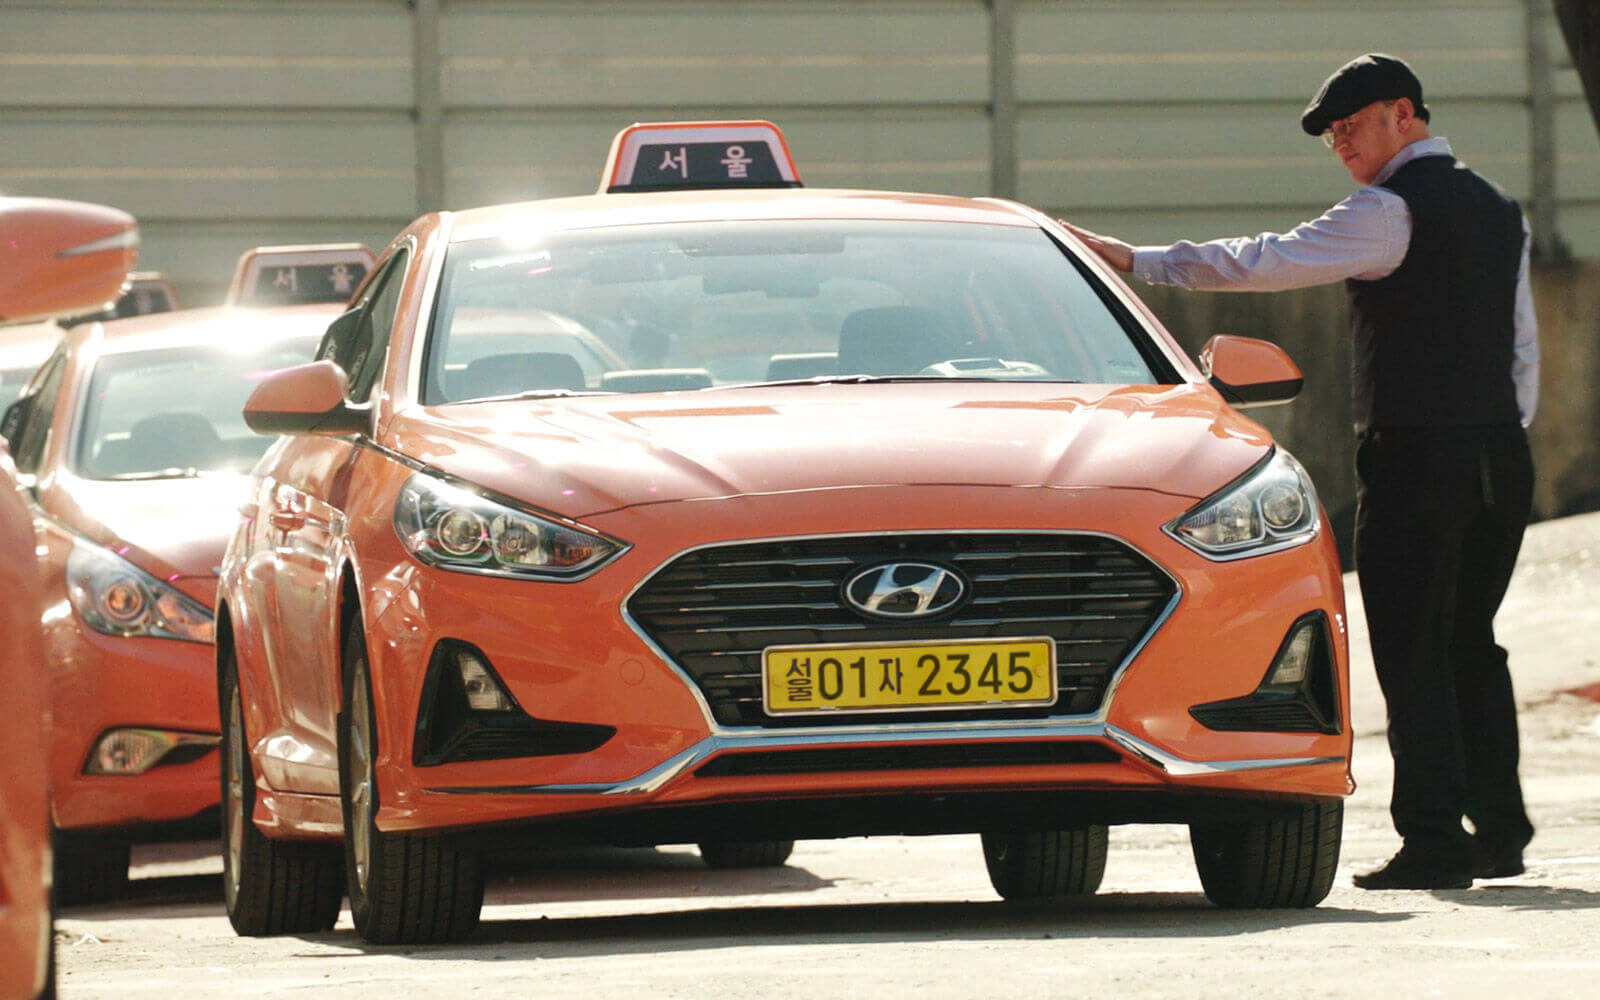 hyundai driving assist technology for hearing impaired